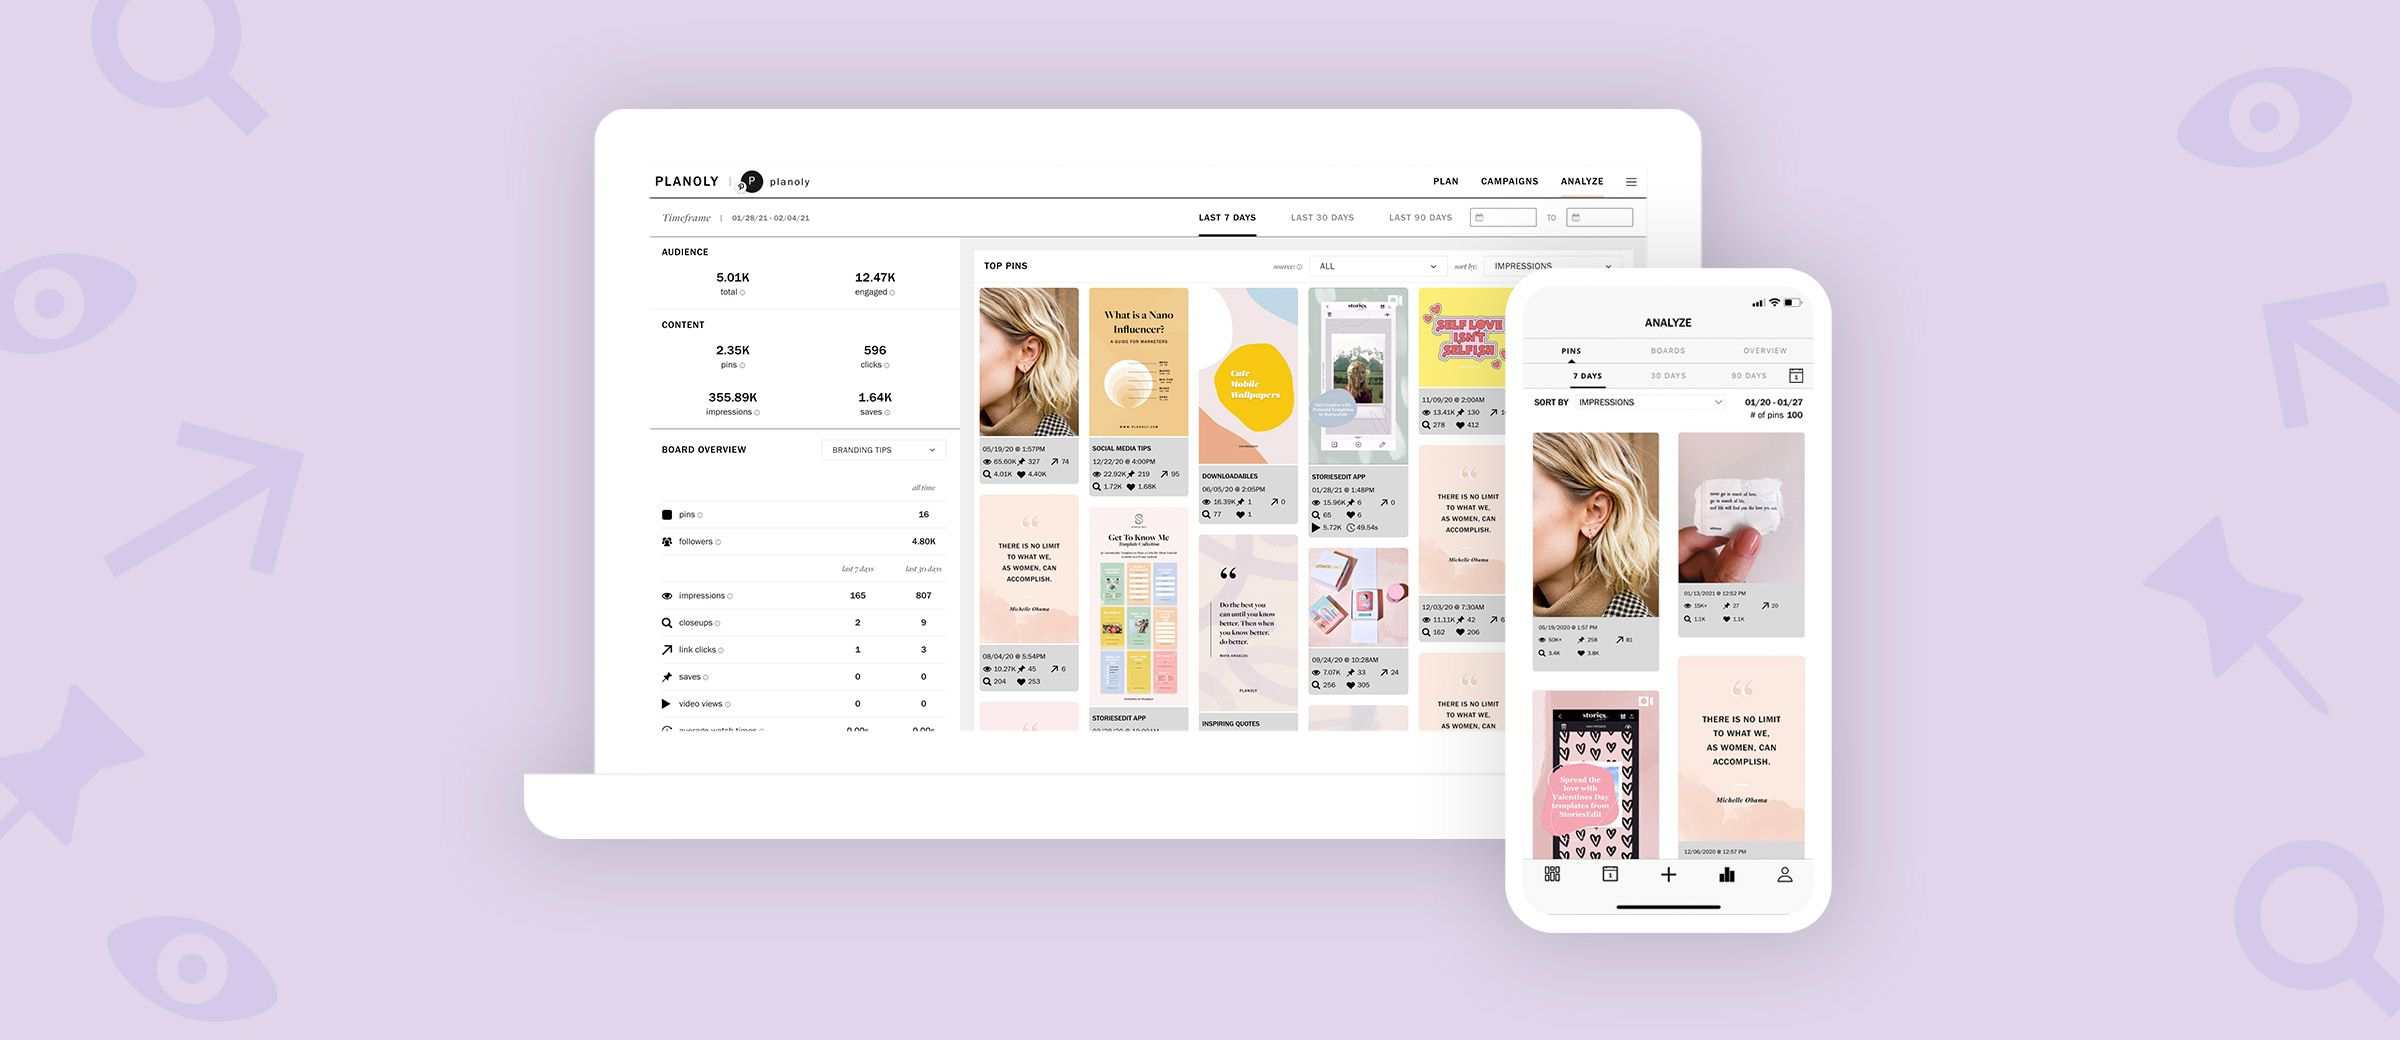 Read about How to Use our Pin Planner's Pinterest Analytics Feature, on PLANOLY